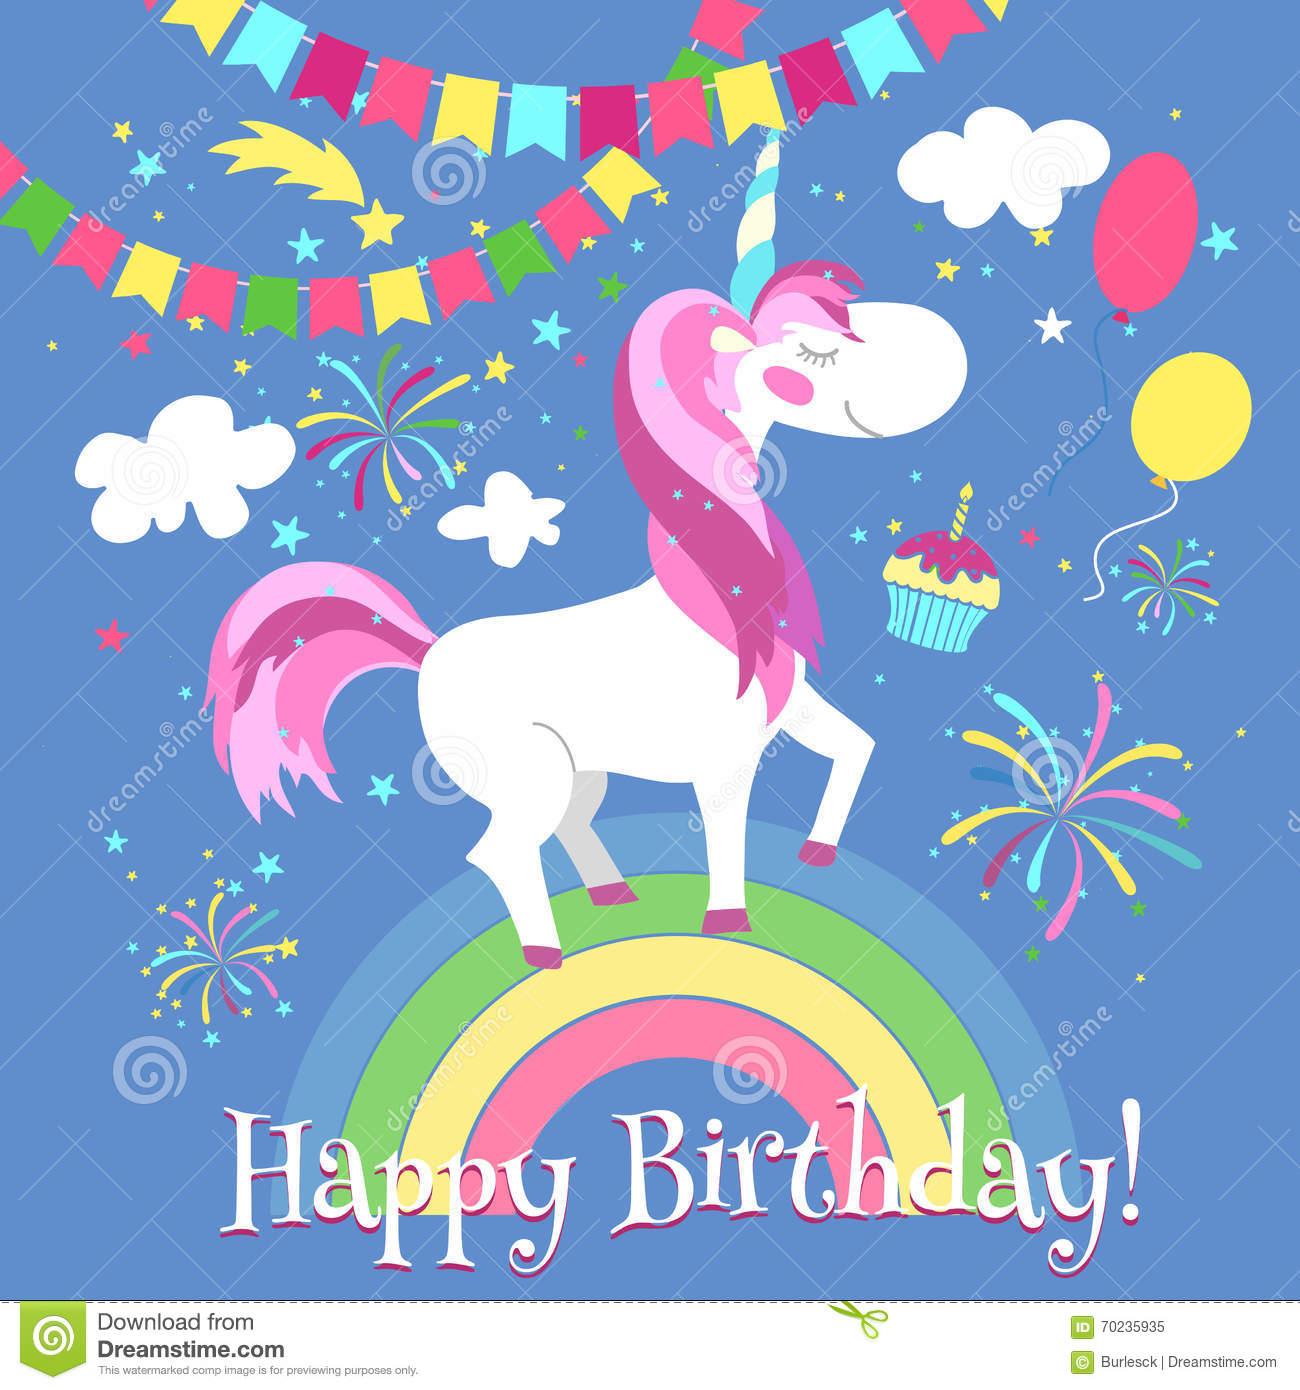 Happy Birthday Card With Cute Unicorn Vector Template On Rainbow Fairytale Fantasy Illustration